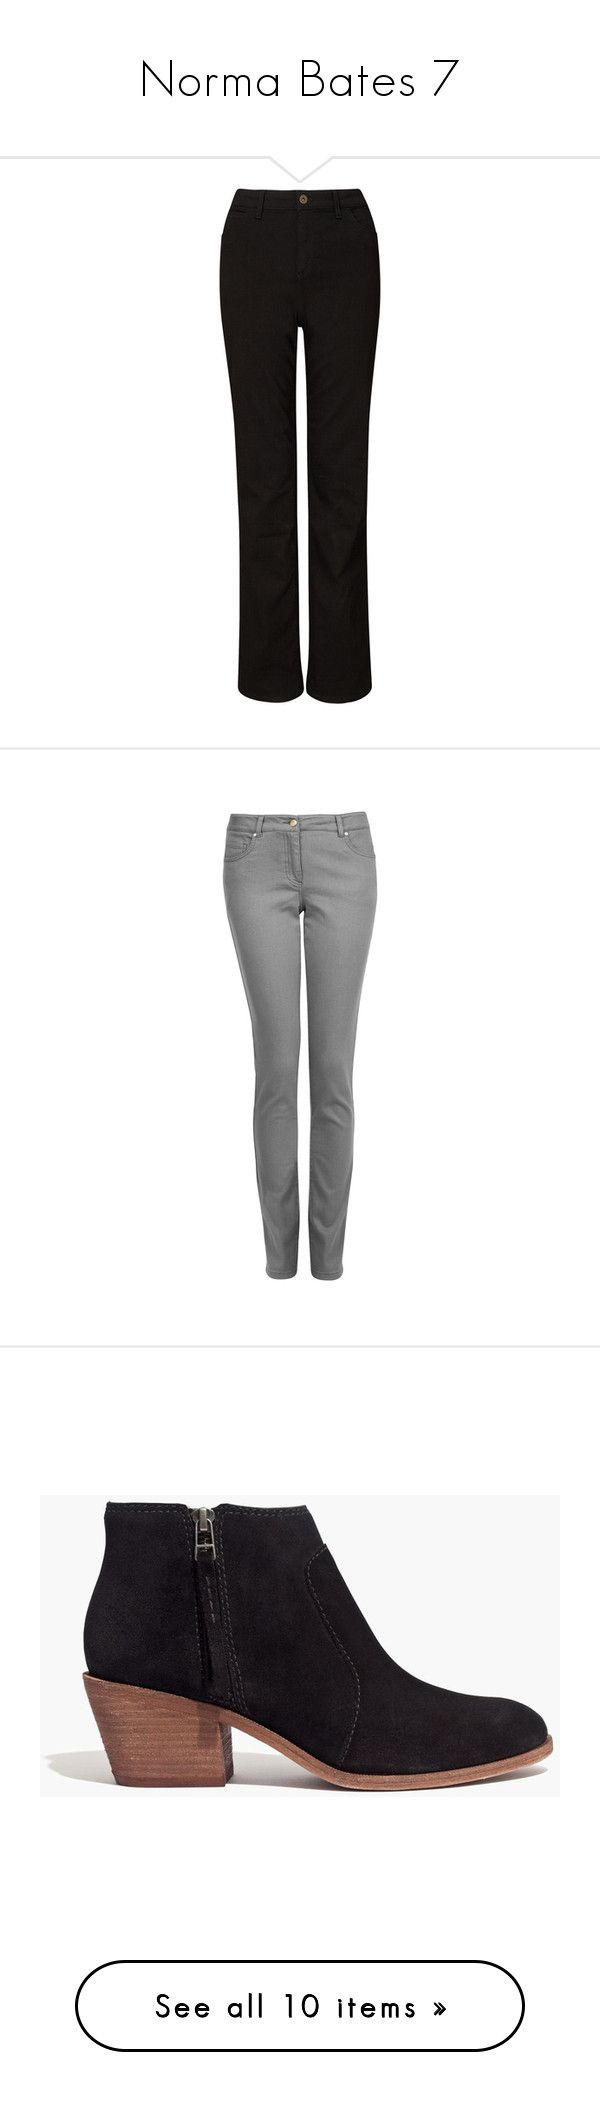 """""""Norma Bates 7"""" by rtlove ❤ liked on Polyvore featuring jeans, pants, black, john lewis, slim fit straight leg jeans, slim fit jeans, slim straight leg jeans, slim cut jeans, laura ashley jeans and straight leg jeans"""